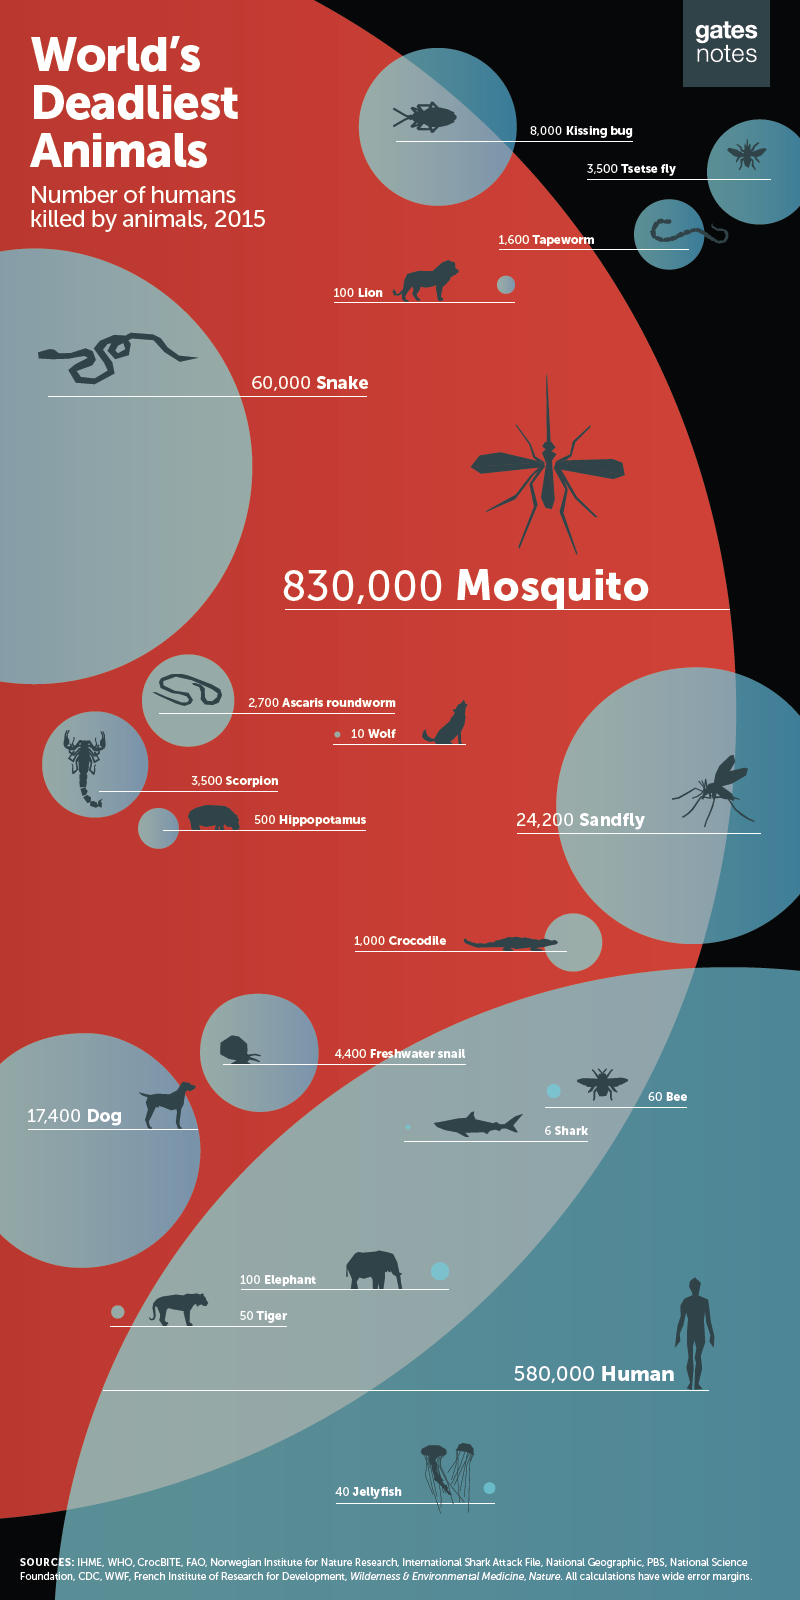 World's Deadliest Animals, Gates Foundation